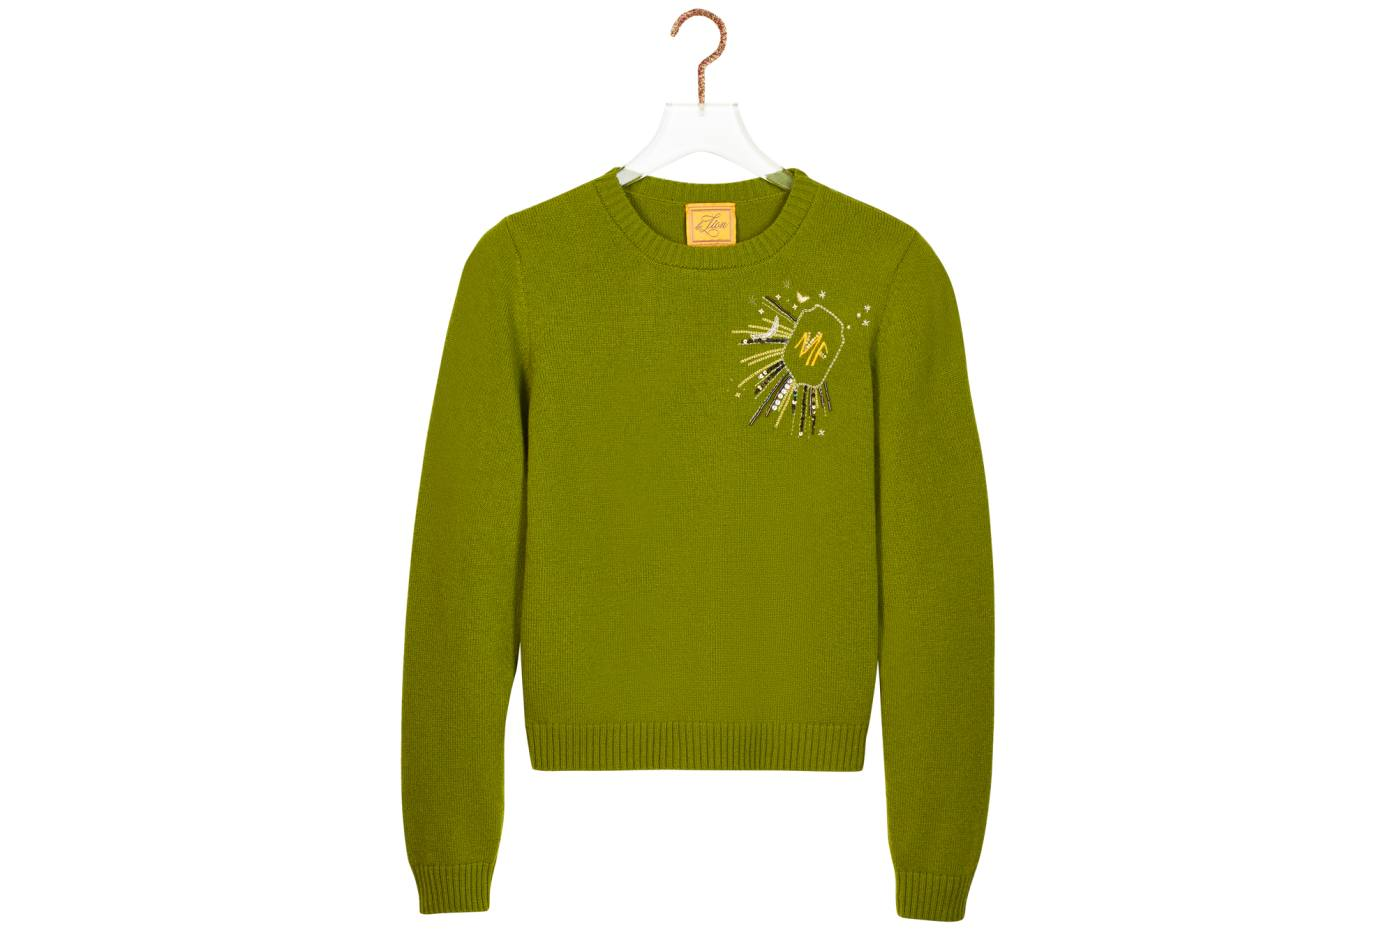 Merino wool Petite Crewneck with monogram, from $495